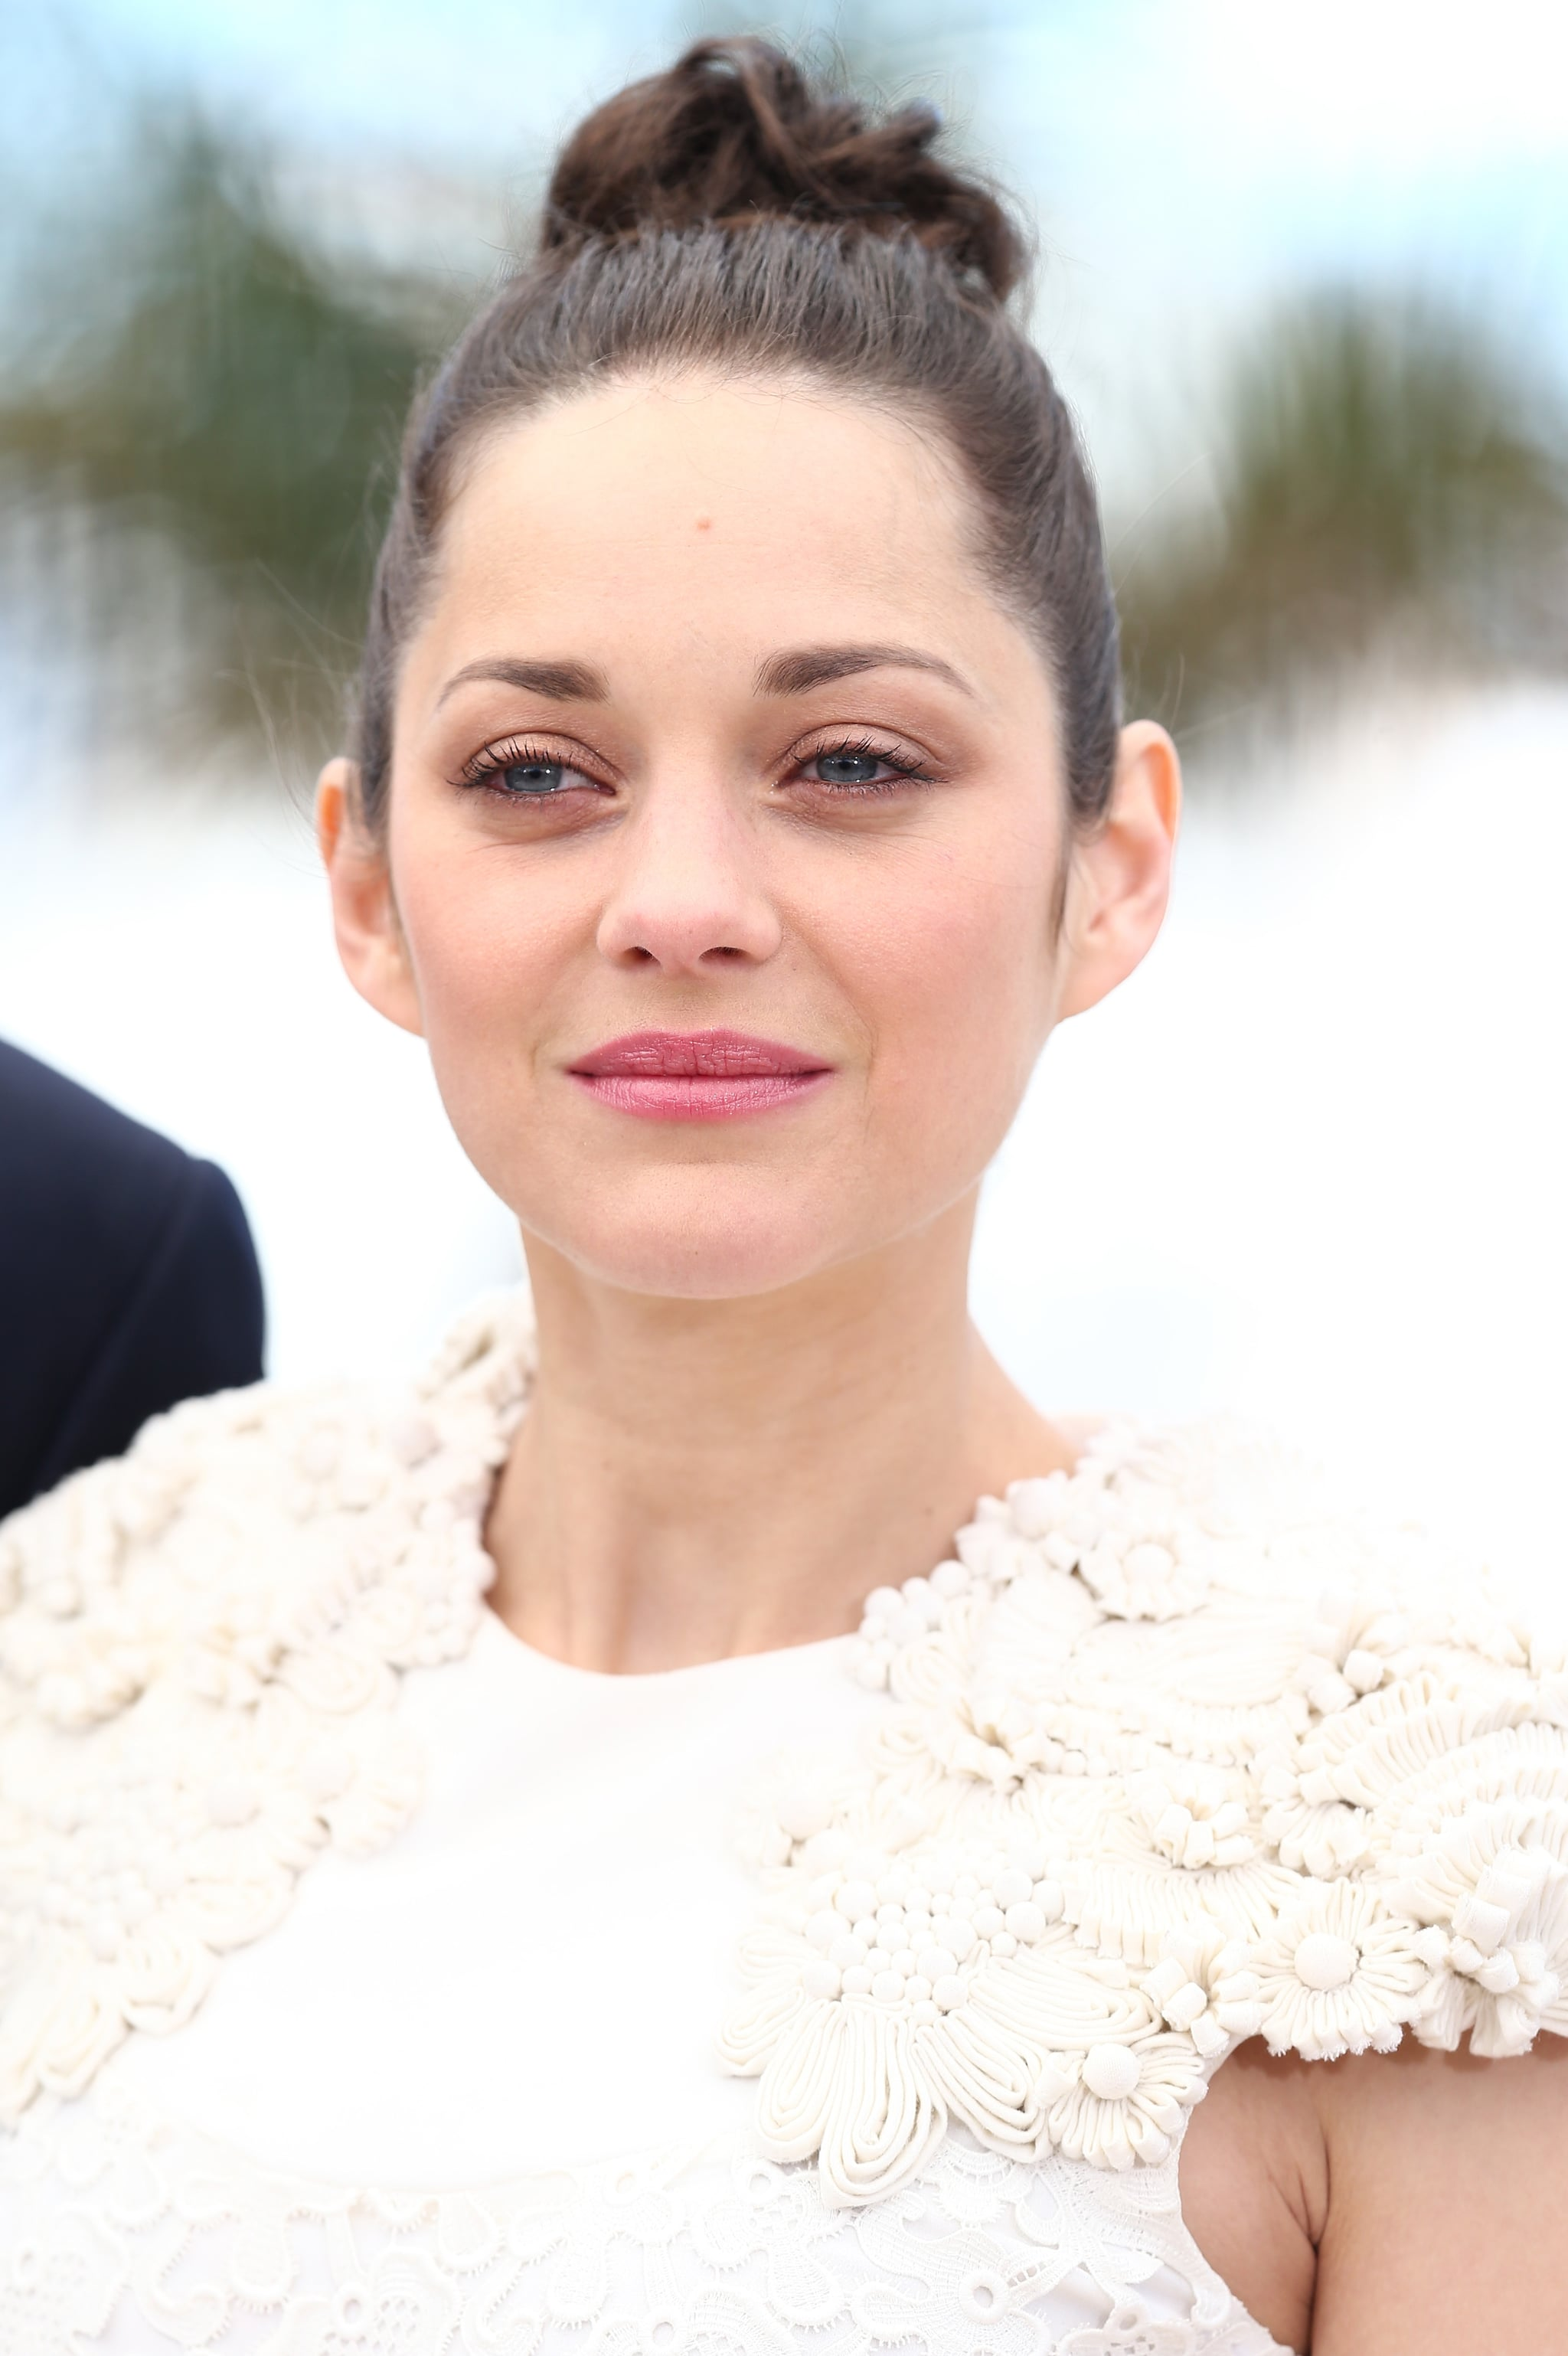 Marion Cotillard was positively glowing at the premiere of The Immigrant. Her coiled topknot, pink shadow, and rosy lip hue gave off a serious ballerina vibe.